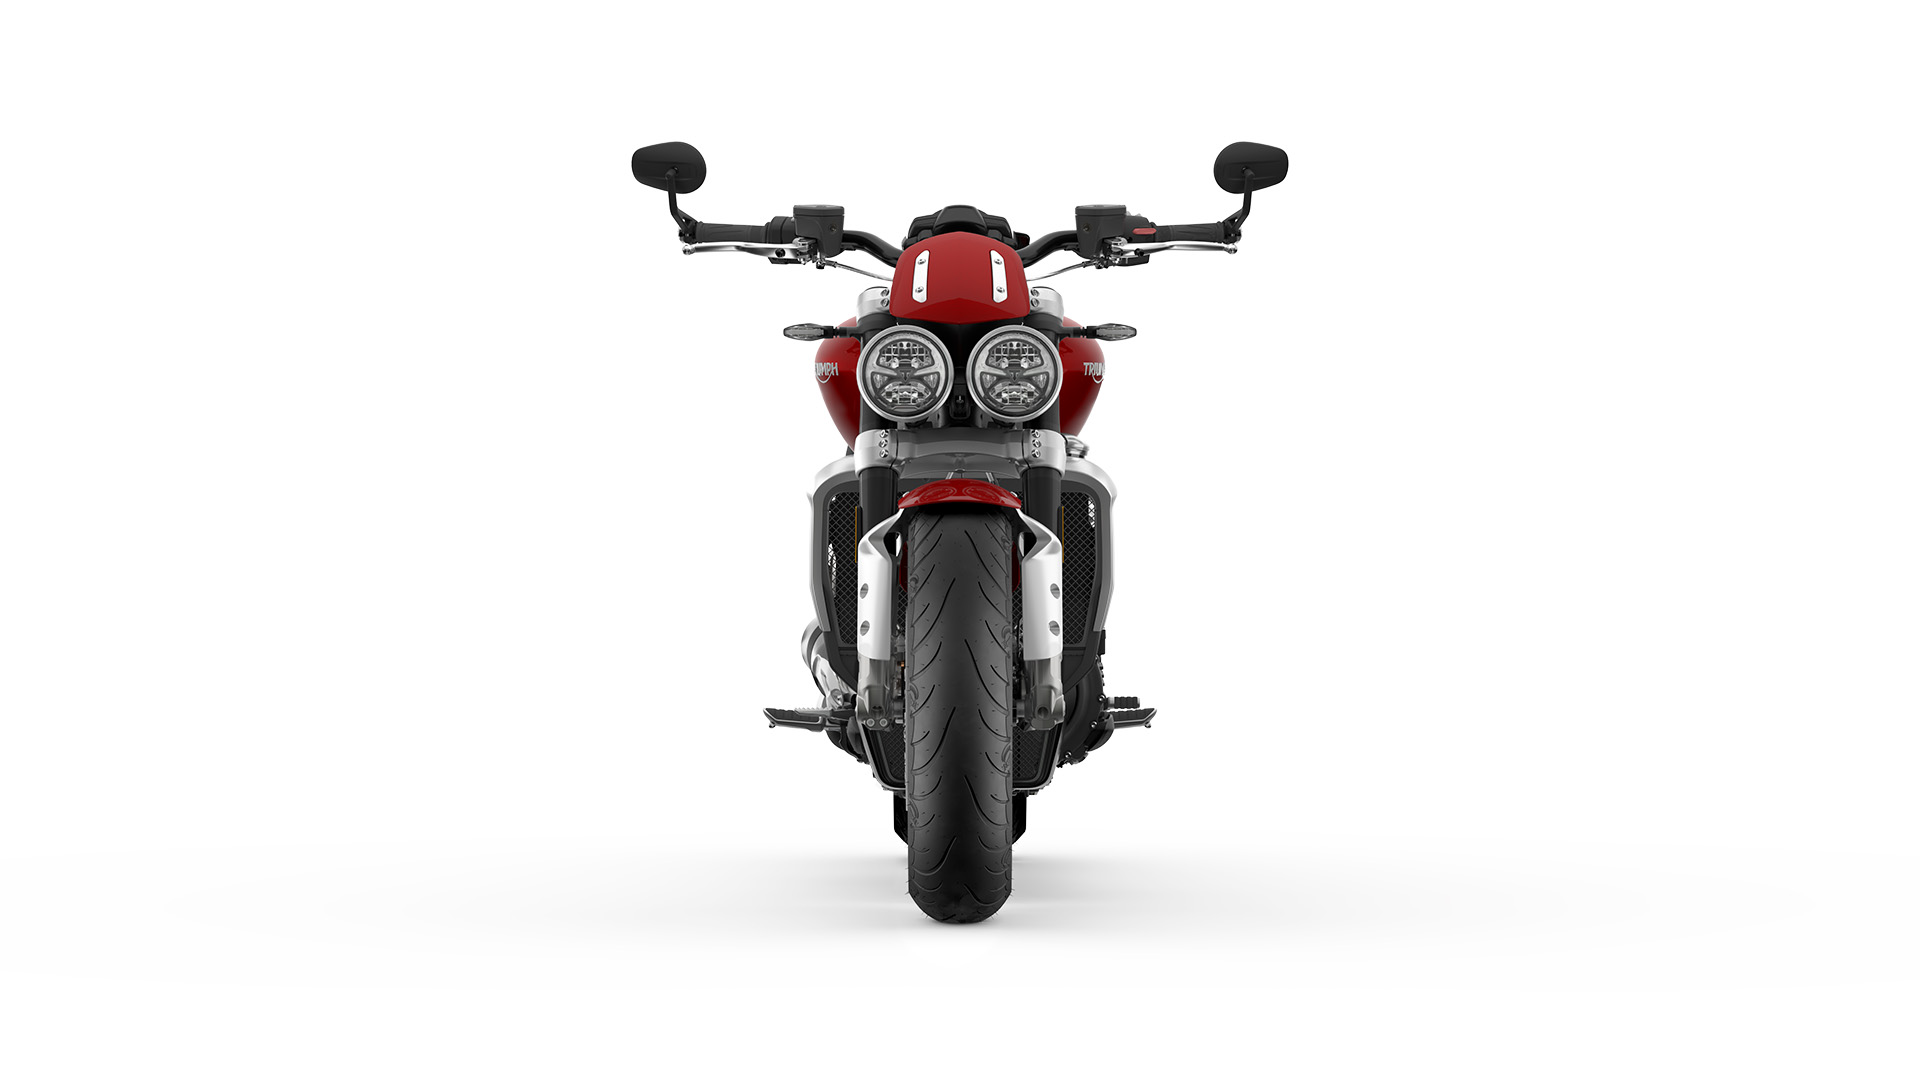 The front CGI view of the new Triumph Rocket 3 R featuring the twin LED headlights